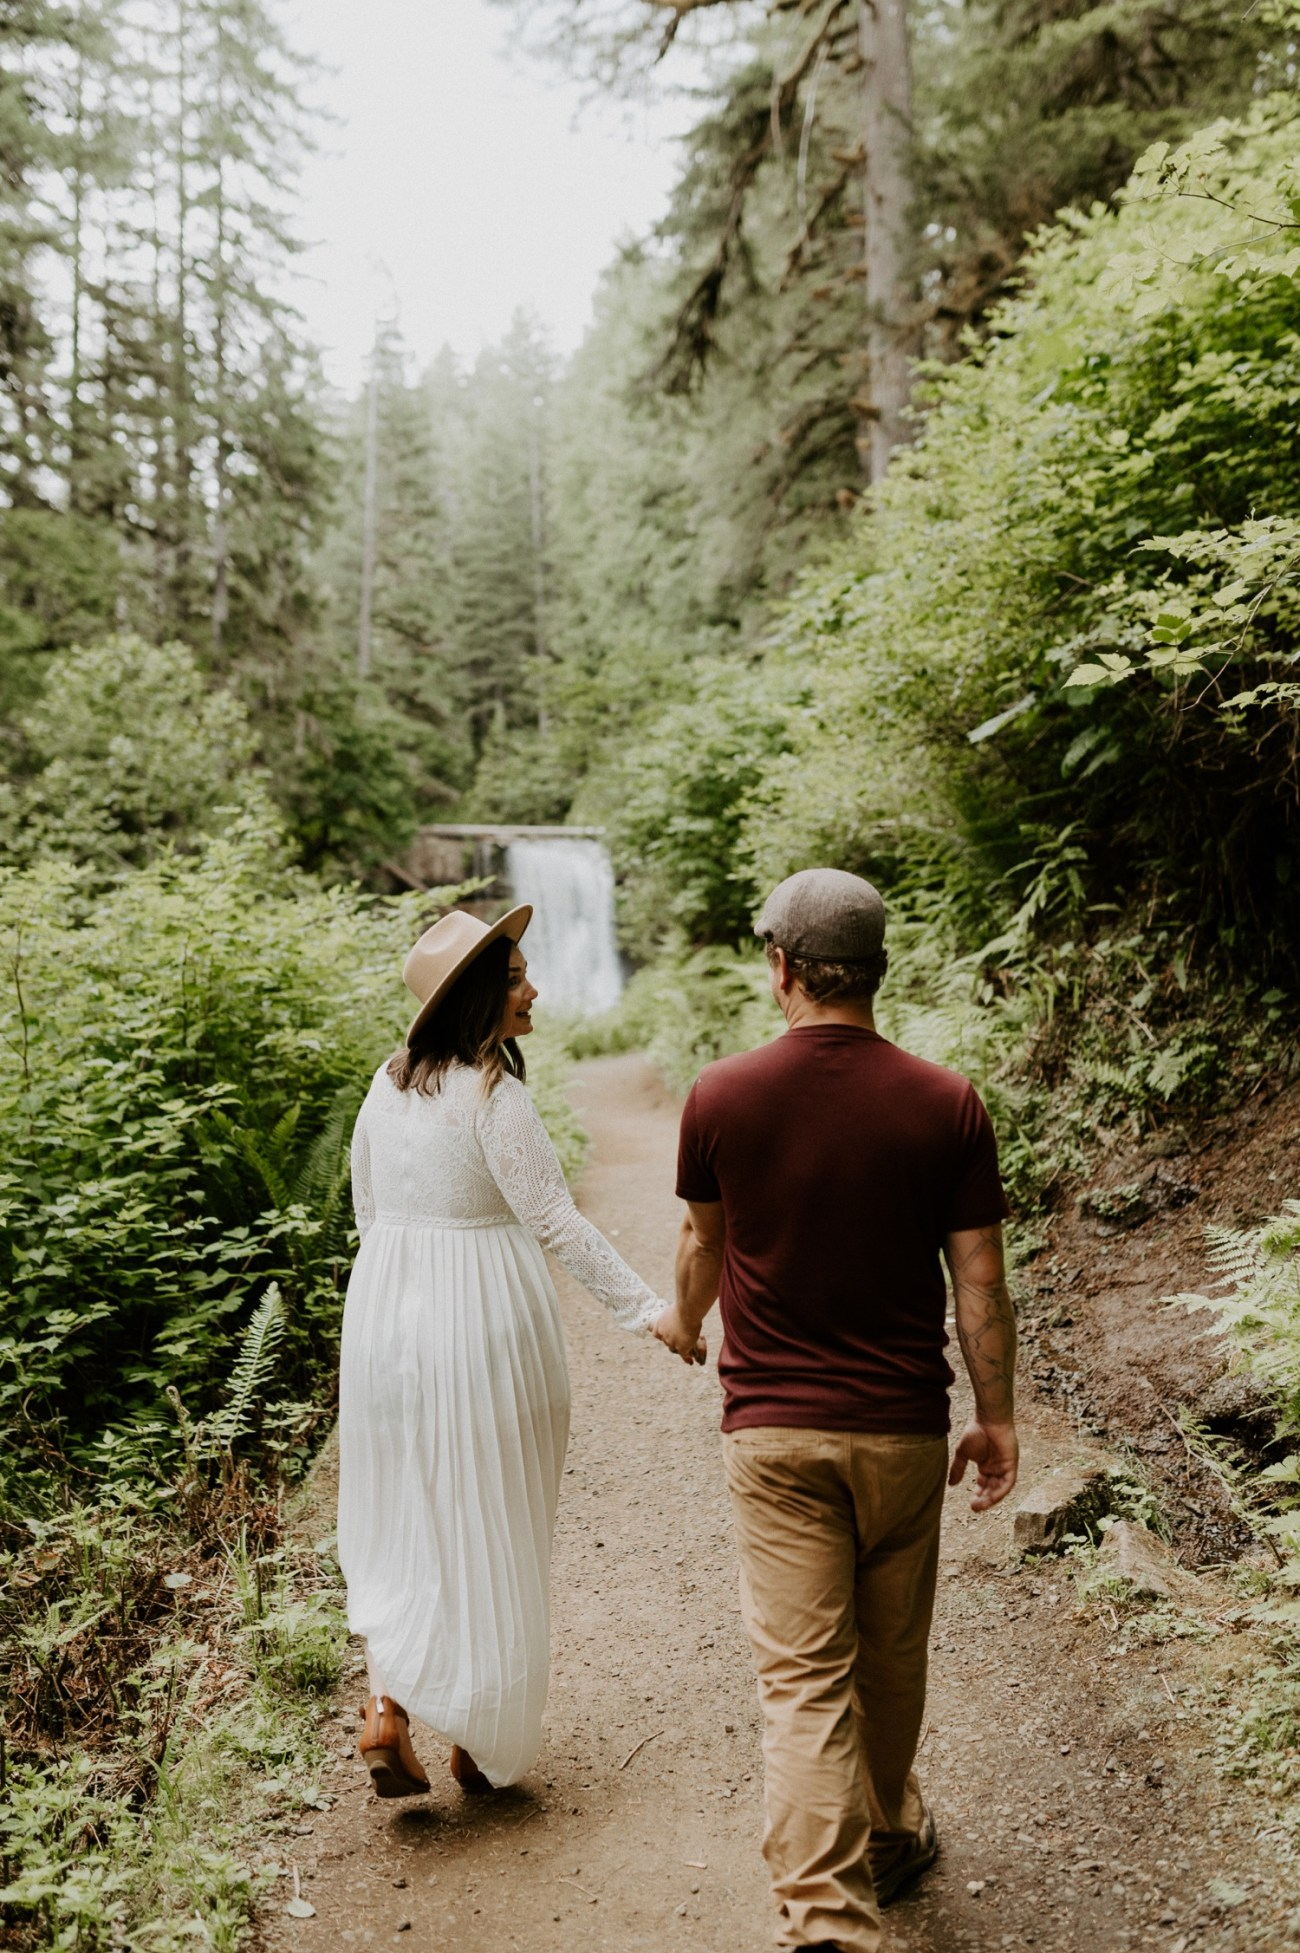 Silver Falls State Park Engagement Session North Falls Engagement Photos Portland Wedding Photographer Oregon Elopement Photographer Anais Possamai Photography 011